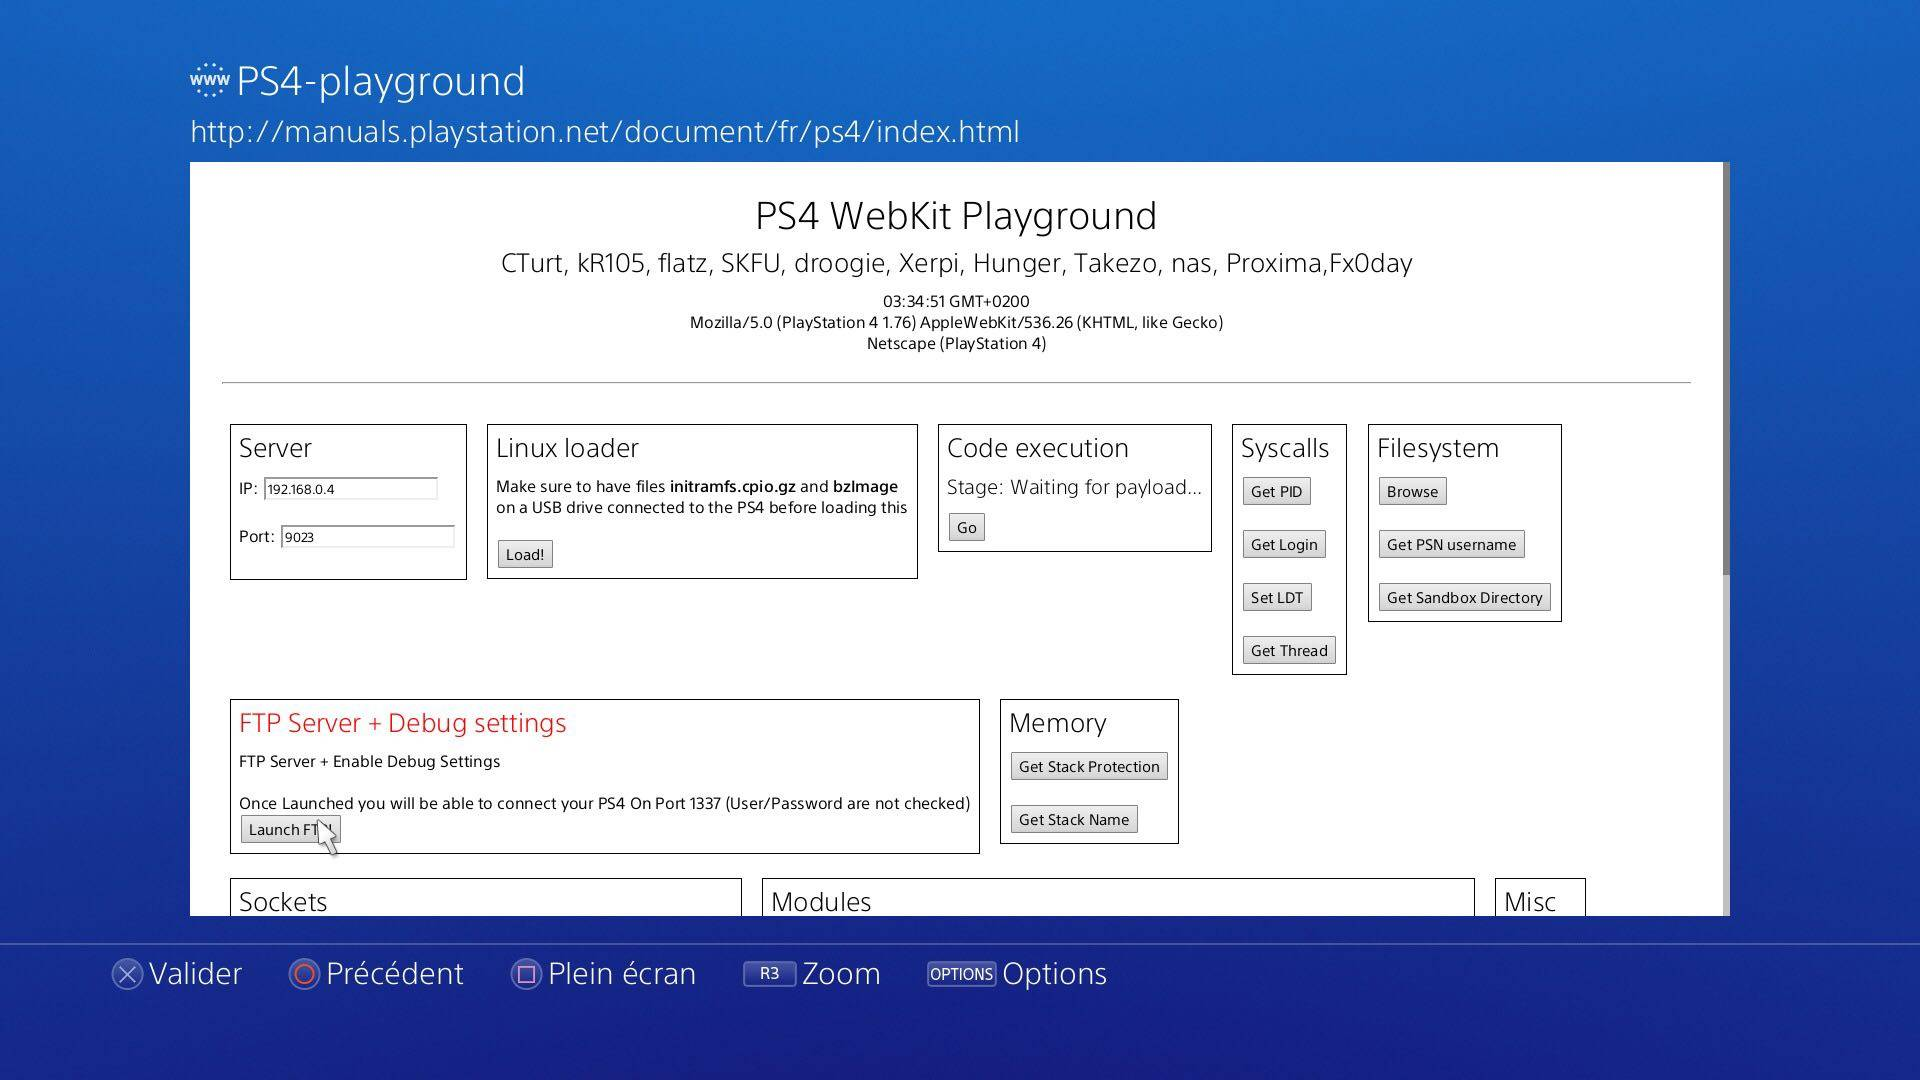 PS4 Playground With Ftp Server and Debug Settings - wololo